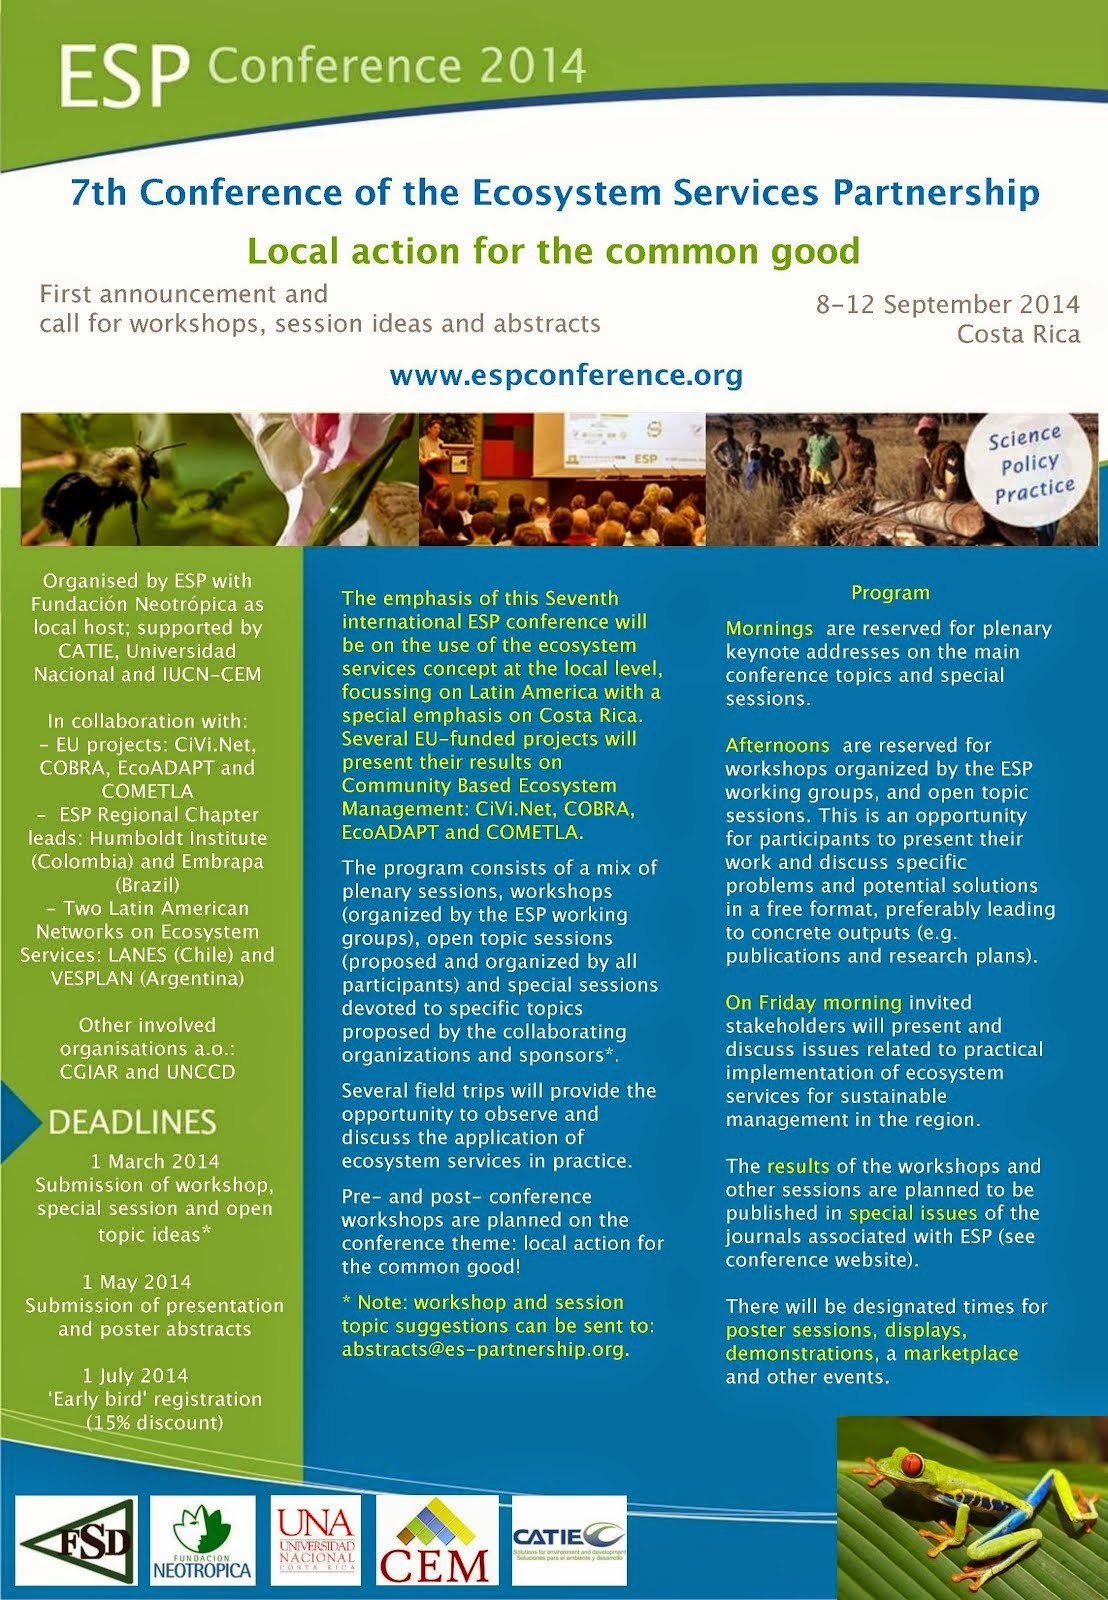 Announcement: 7th International Conference of the Ecosystem Services Partnership